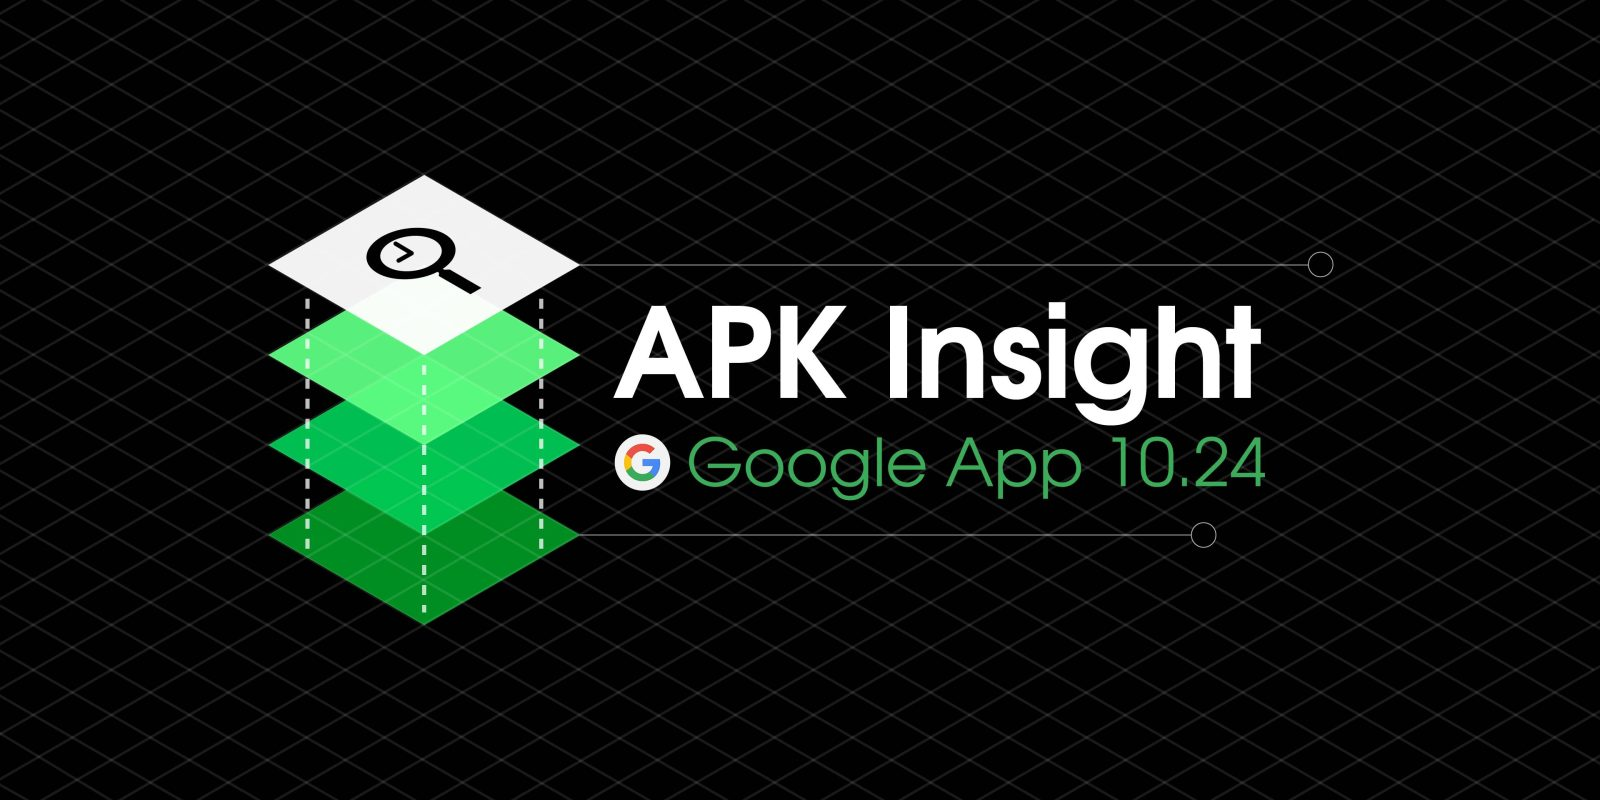 b3d0ccb2450 Google app 10.24 details 'Brief your Assistant,' removes Chromebook  mentions from Assistant Availability [APK Insight]